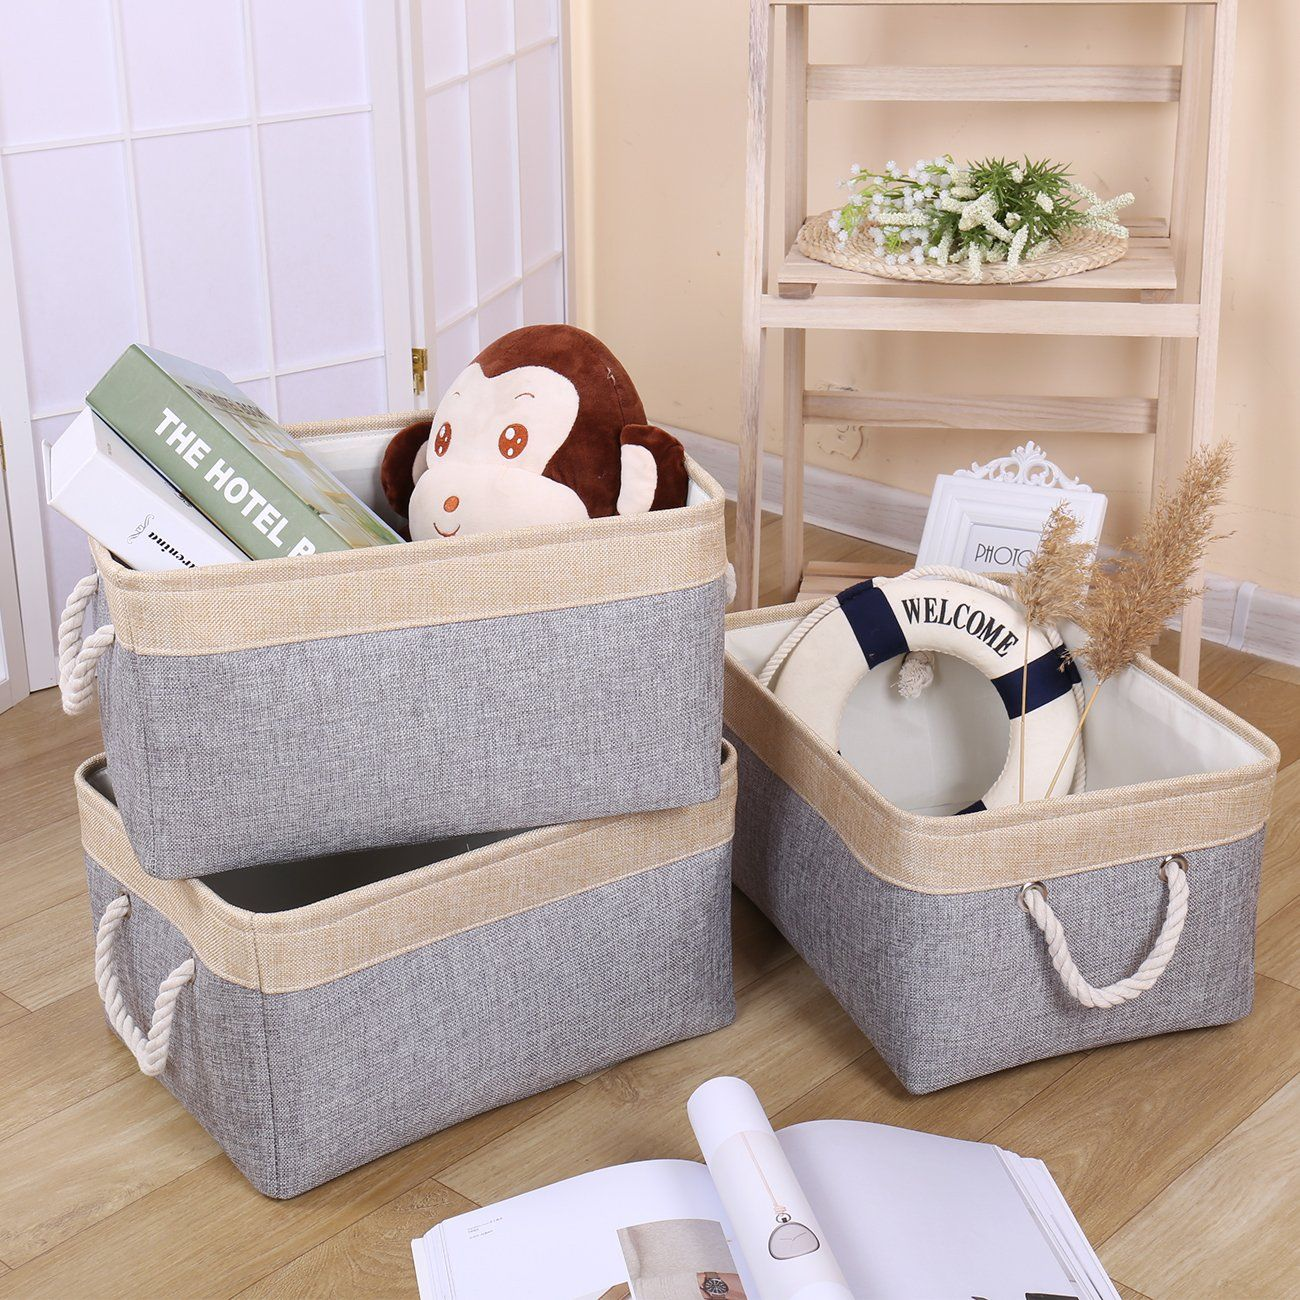 Organizing Homeoffice Ideas: TheWarmHome Collapsible Storage Bin Baskets With Cotton